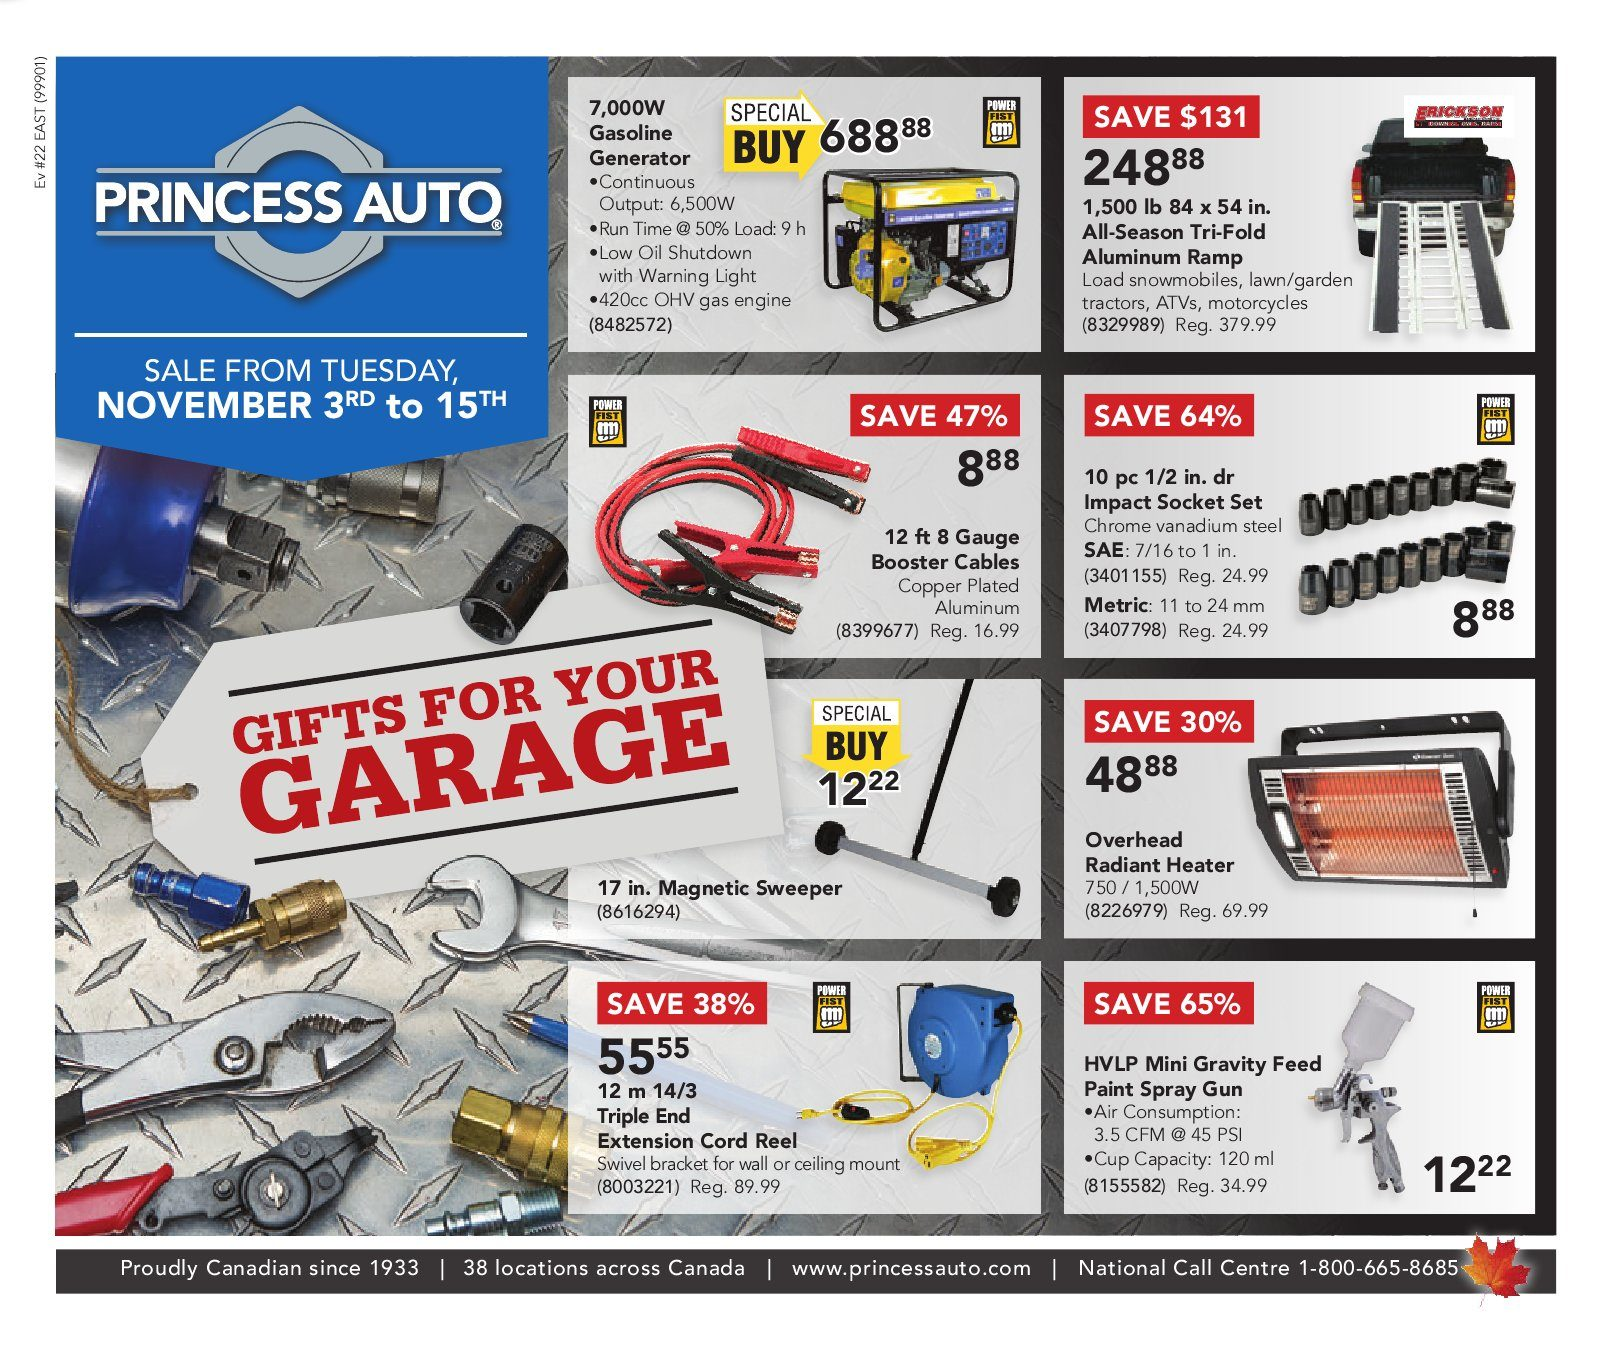 Gifts For Your Garage (EN)